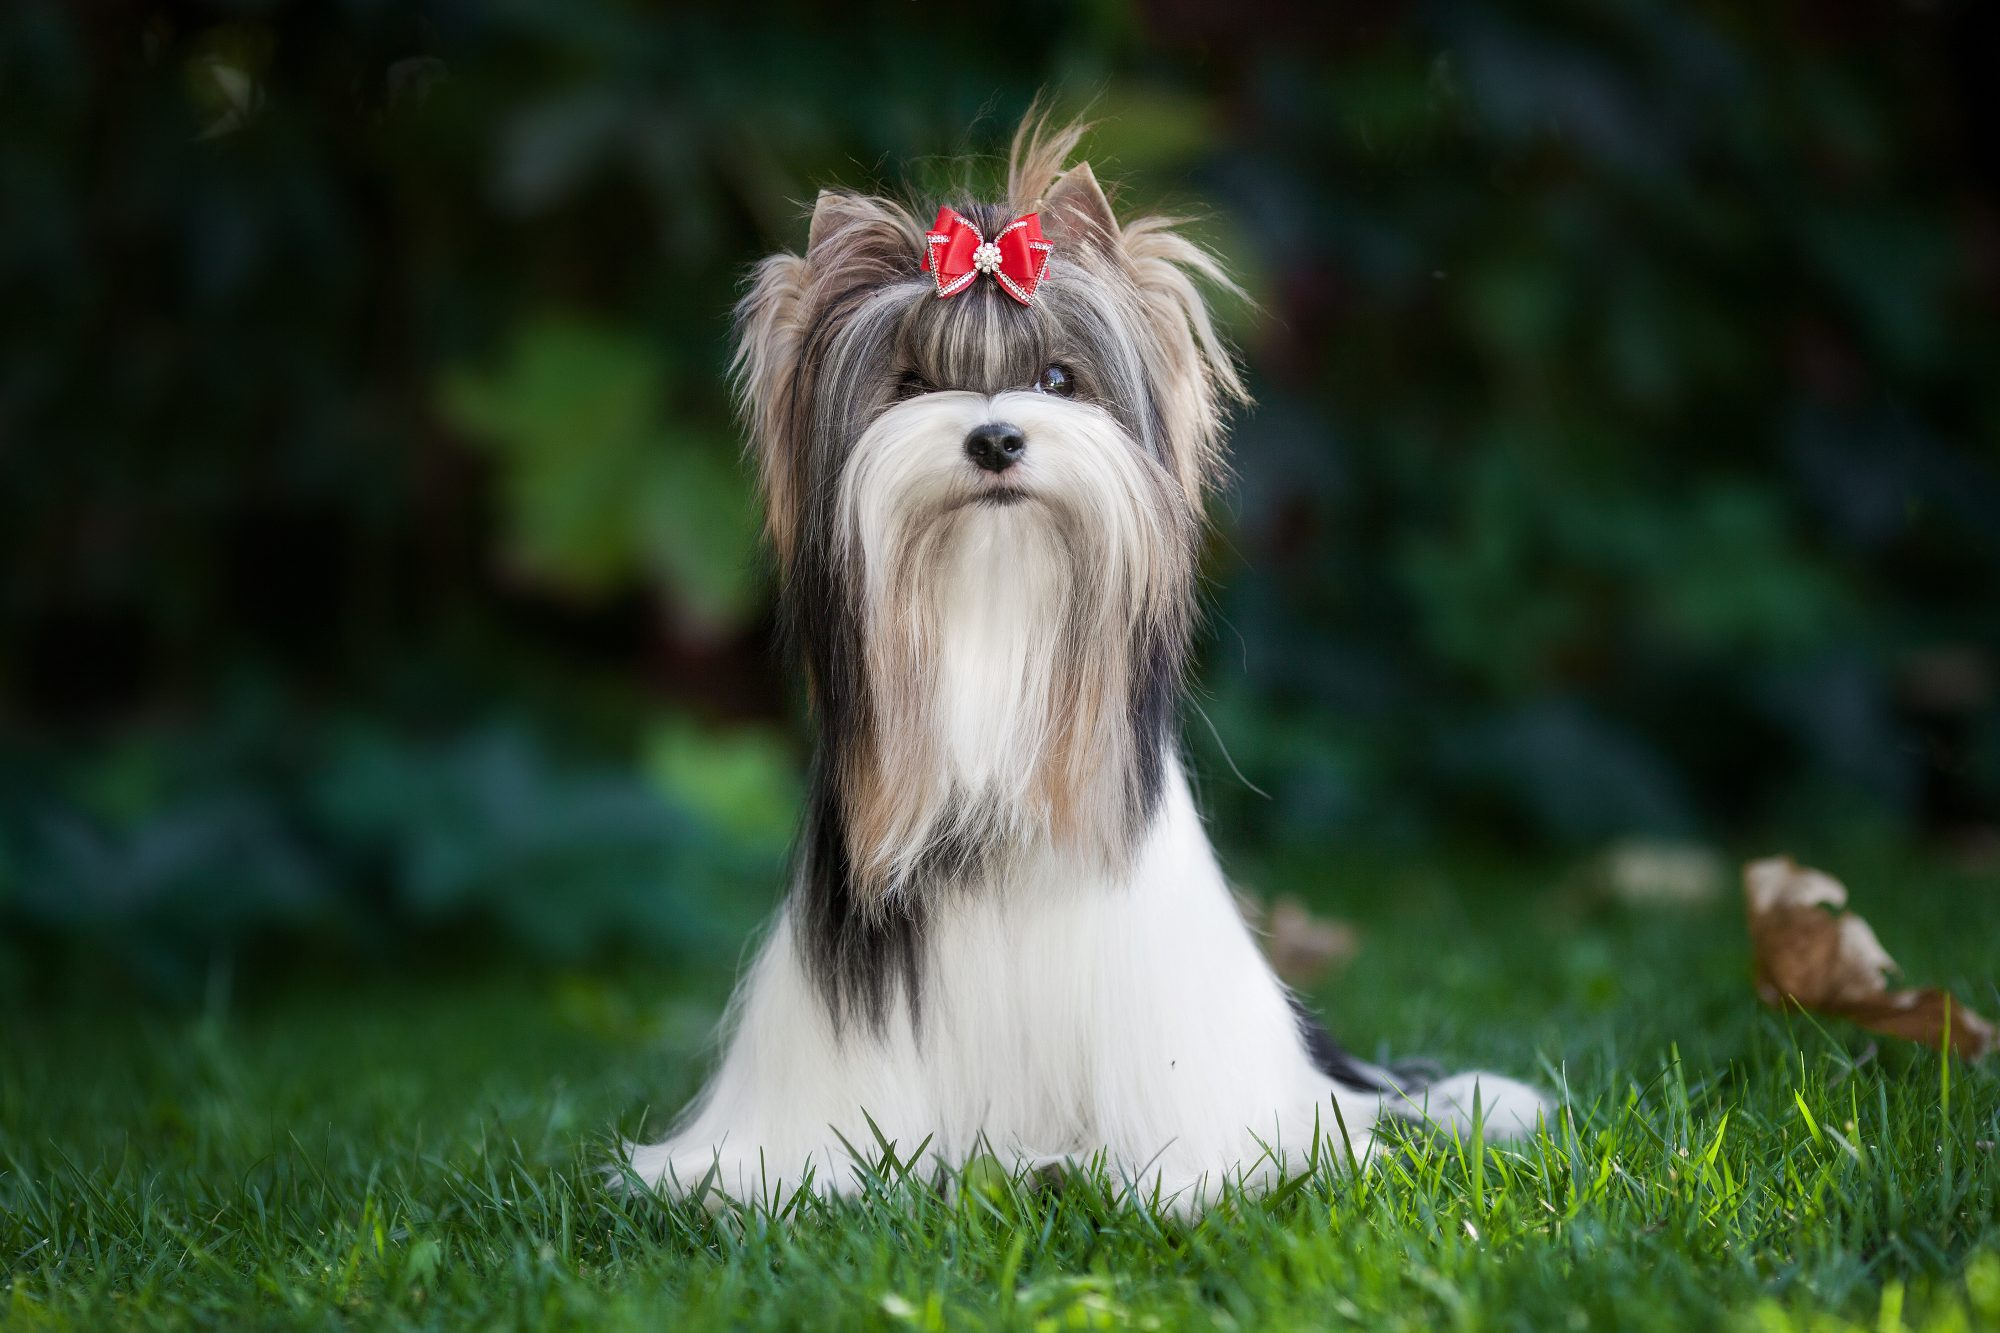 biewer terrier with a red bow in their hair sits on grassy lawn